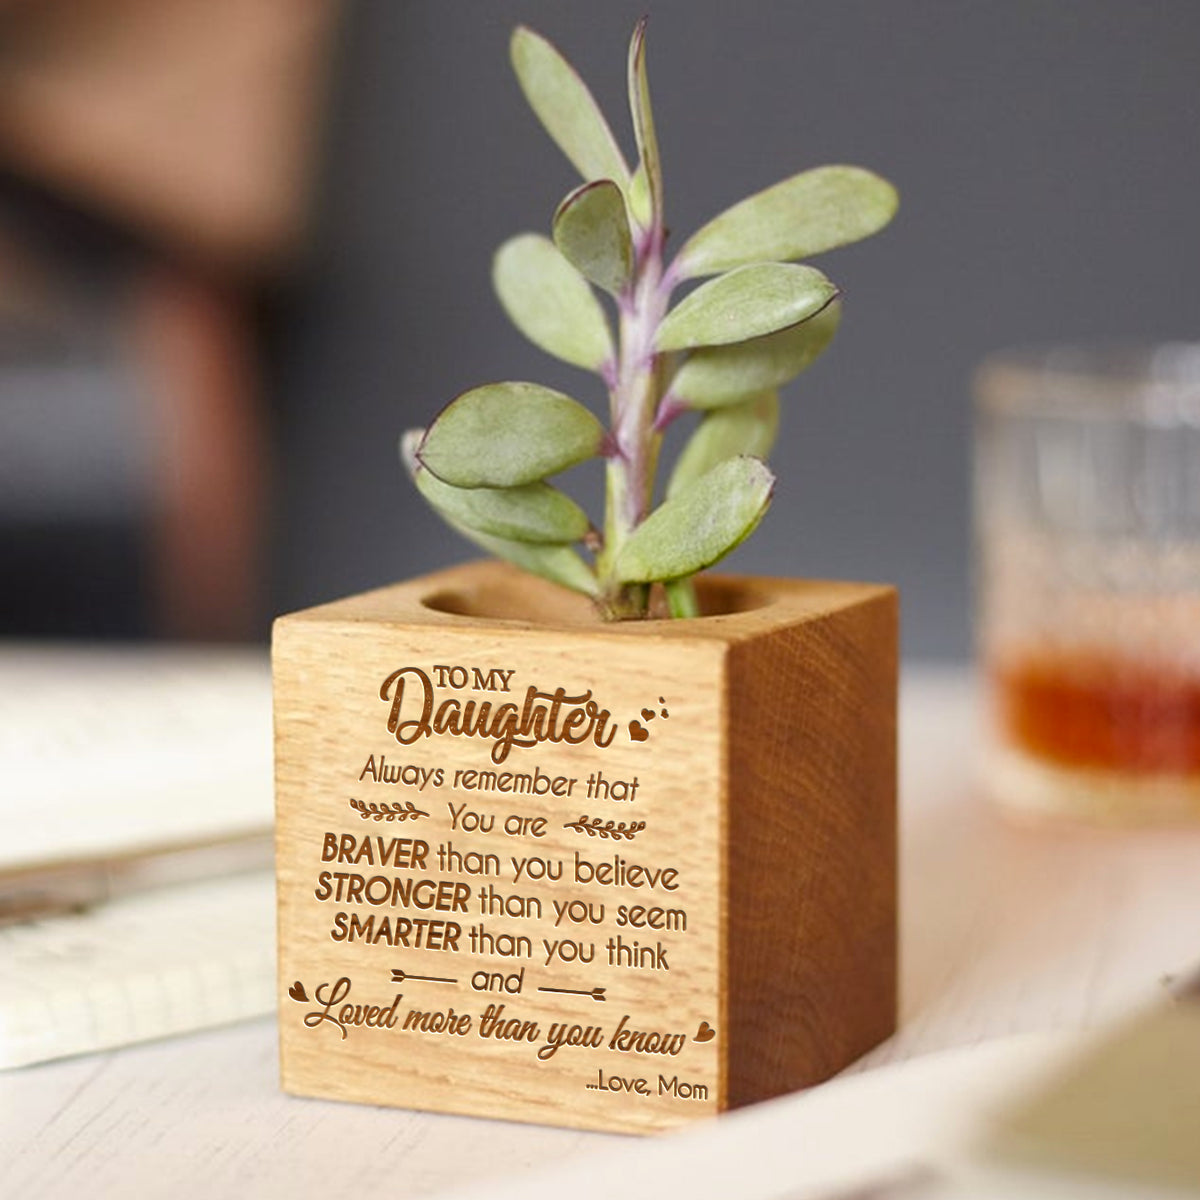 Mom To Daughter - You Are Loved More Than You Know - Engraved Plant Pot